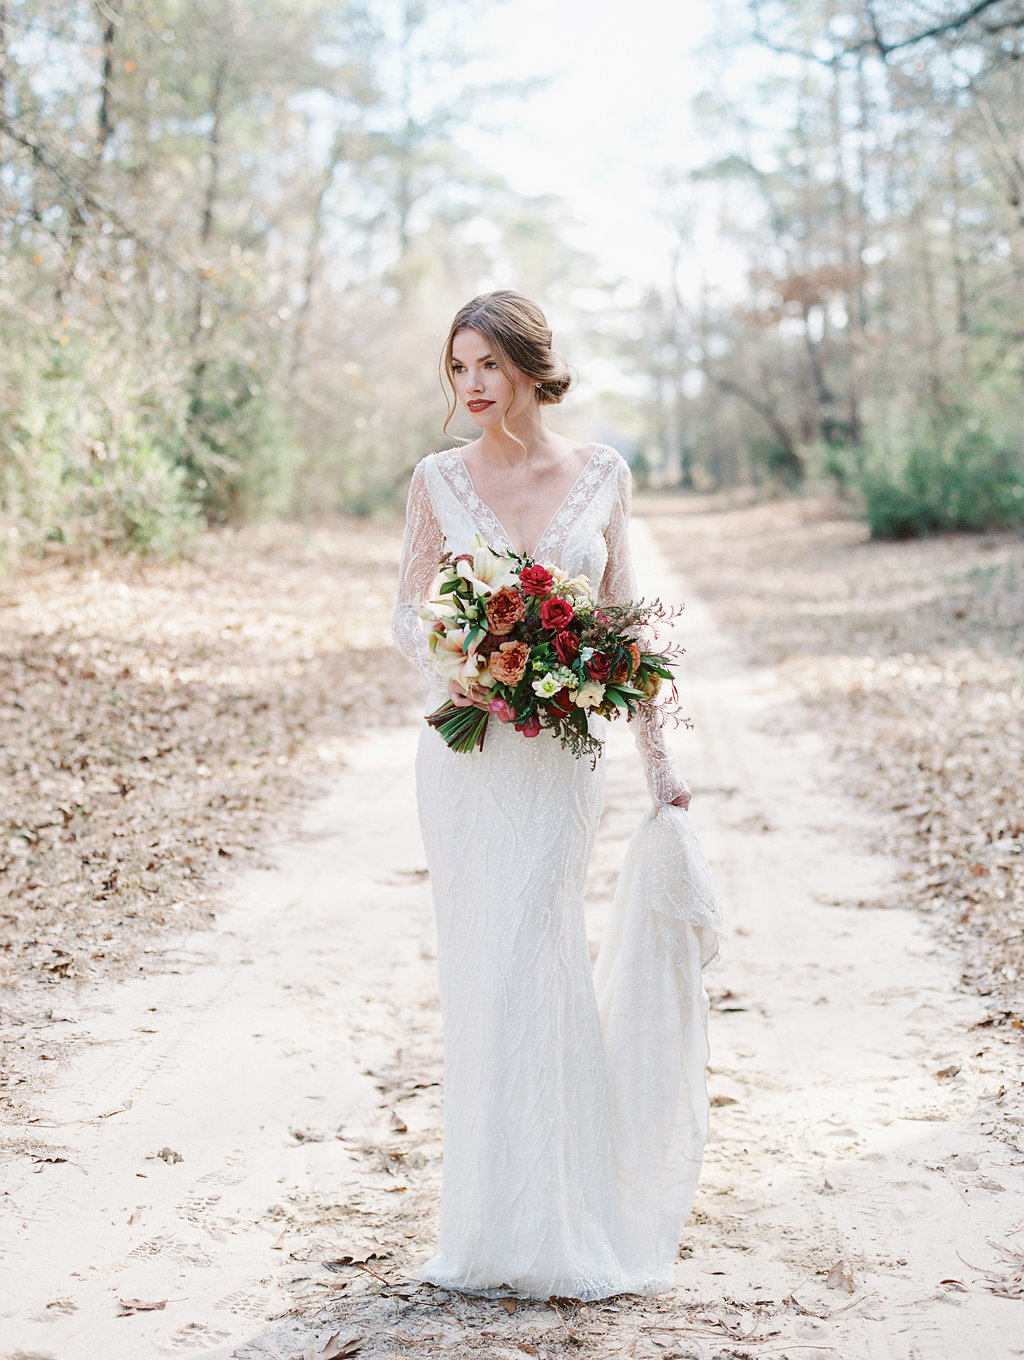 wavering-place-south-carolina-wedding-event-planner-jessica-rourke-382